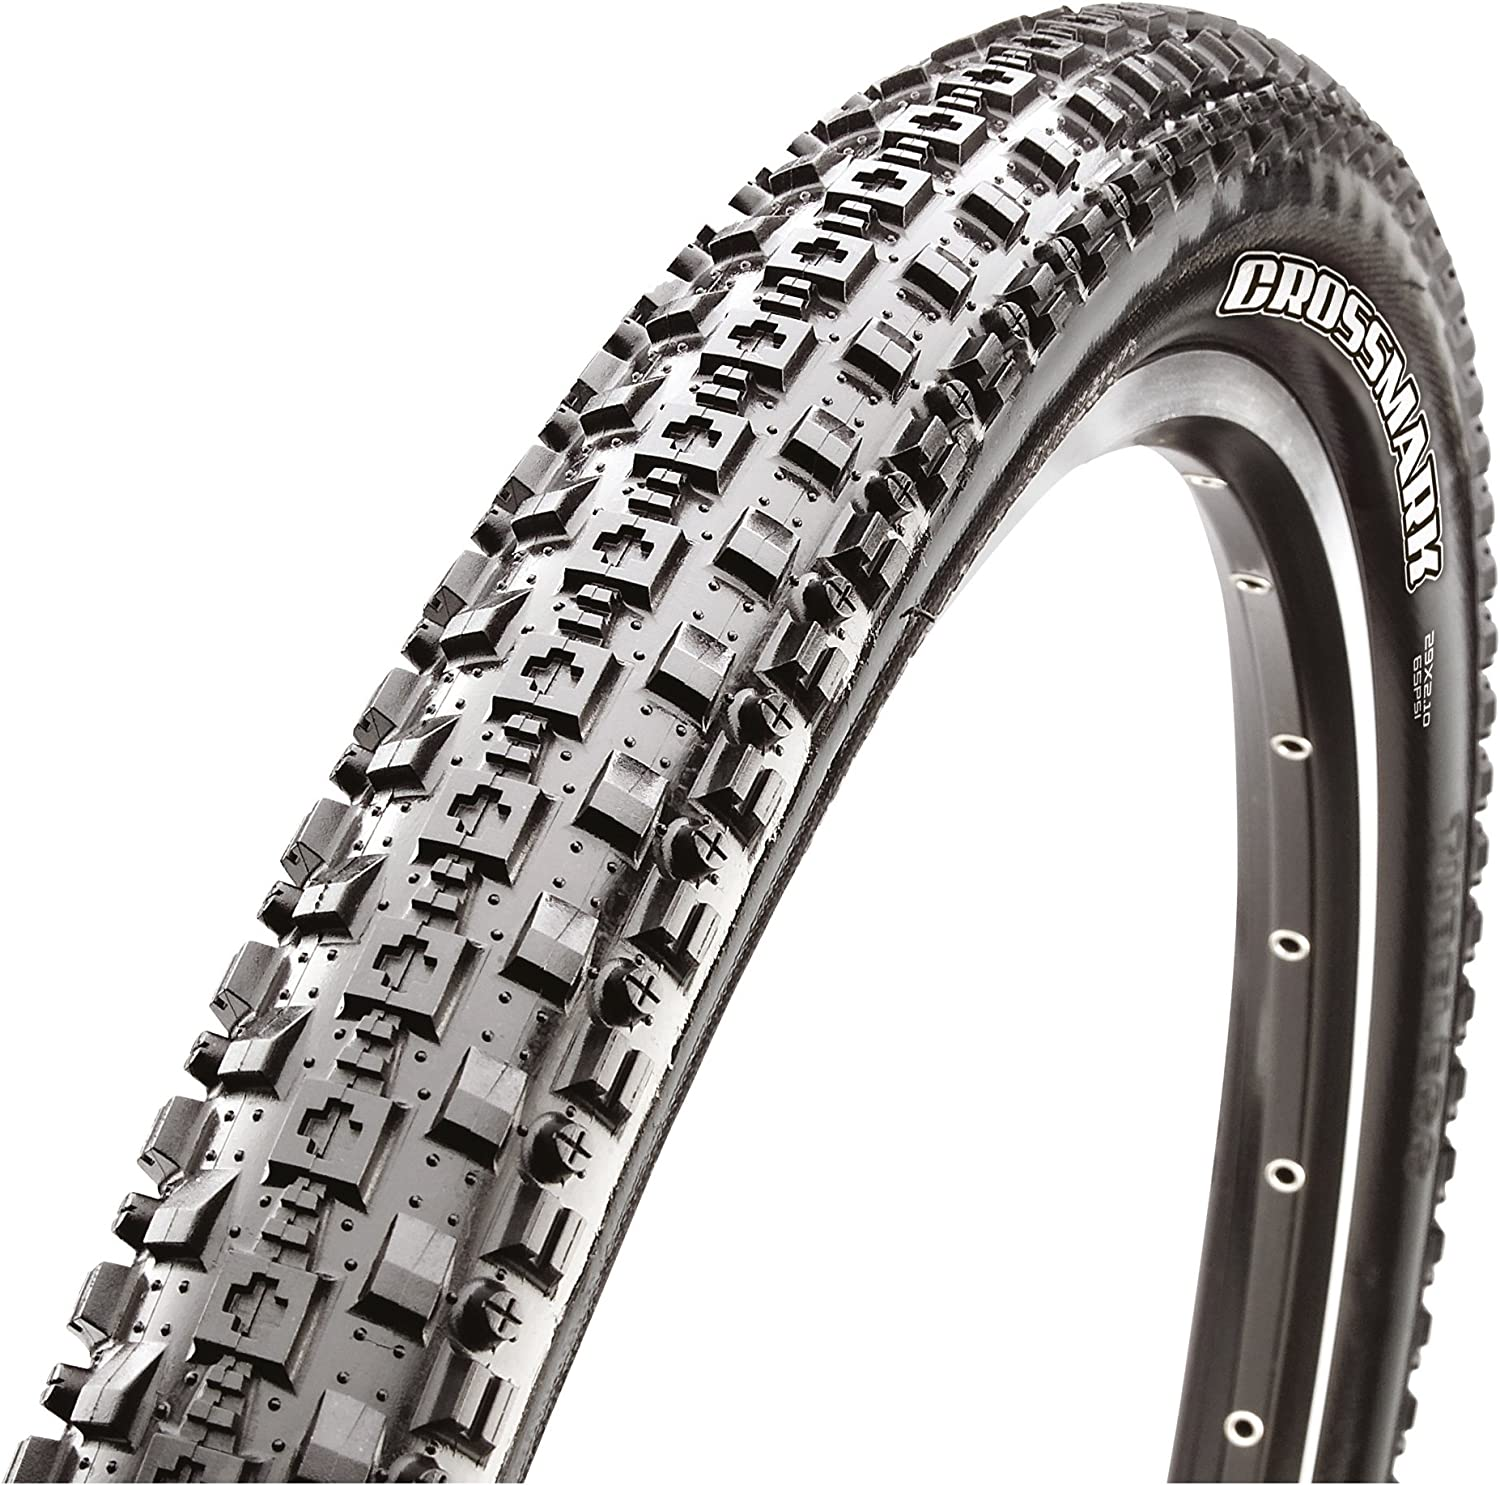 Tyre Bike Maxxis Crossmark 26 x 2.10 MTB Tire Mountain Bike 60 Tpi